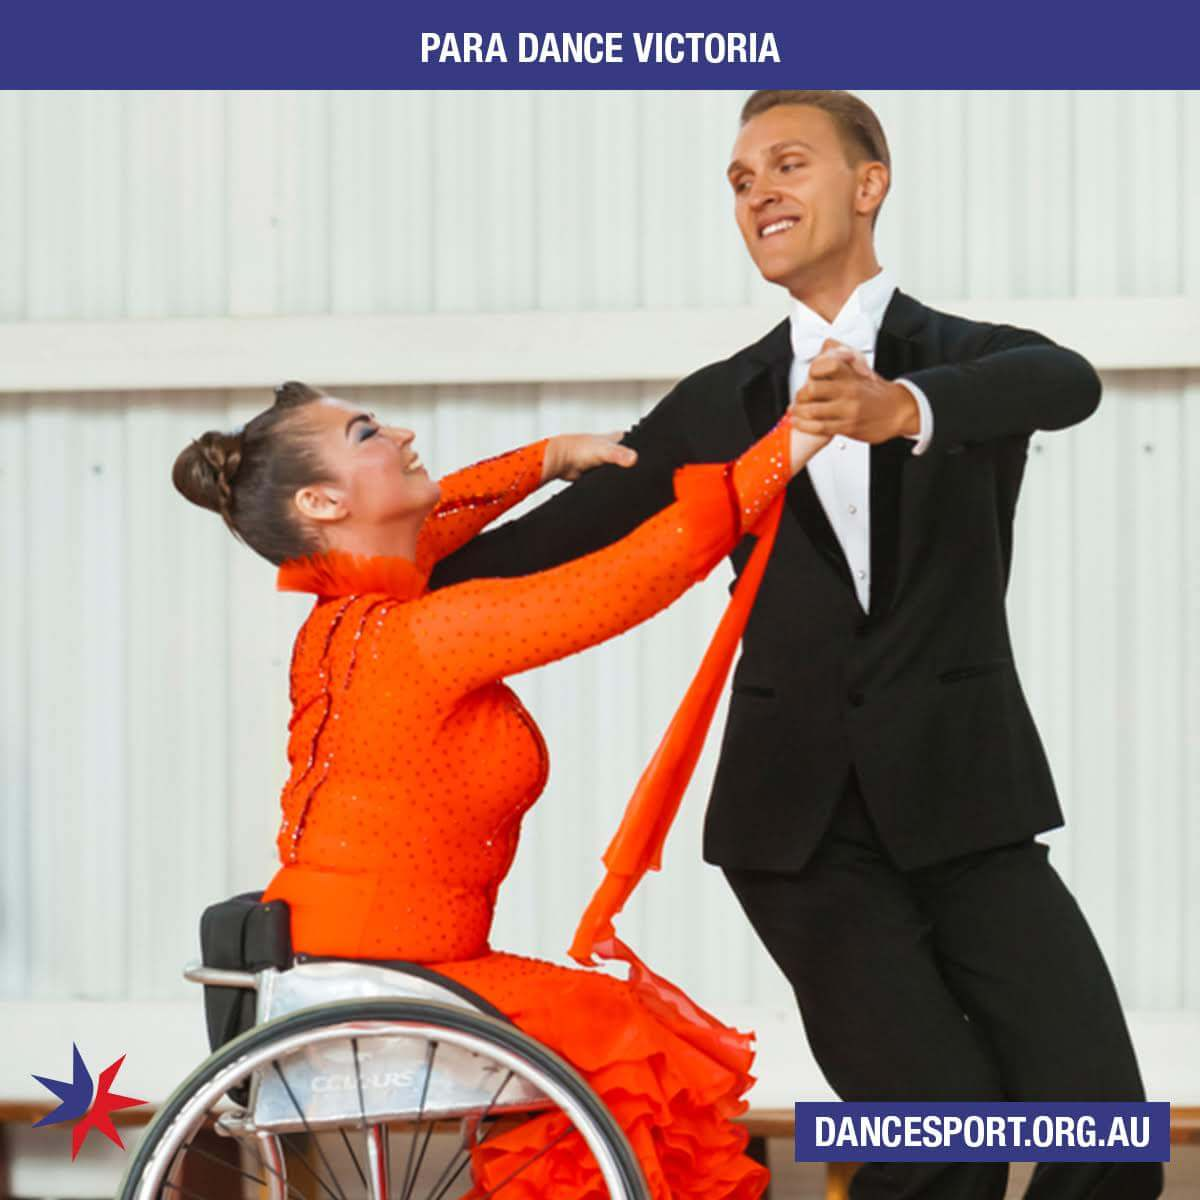 Para Dance comes to Victoria - first Come and Try Day - great success